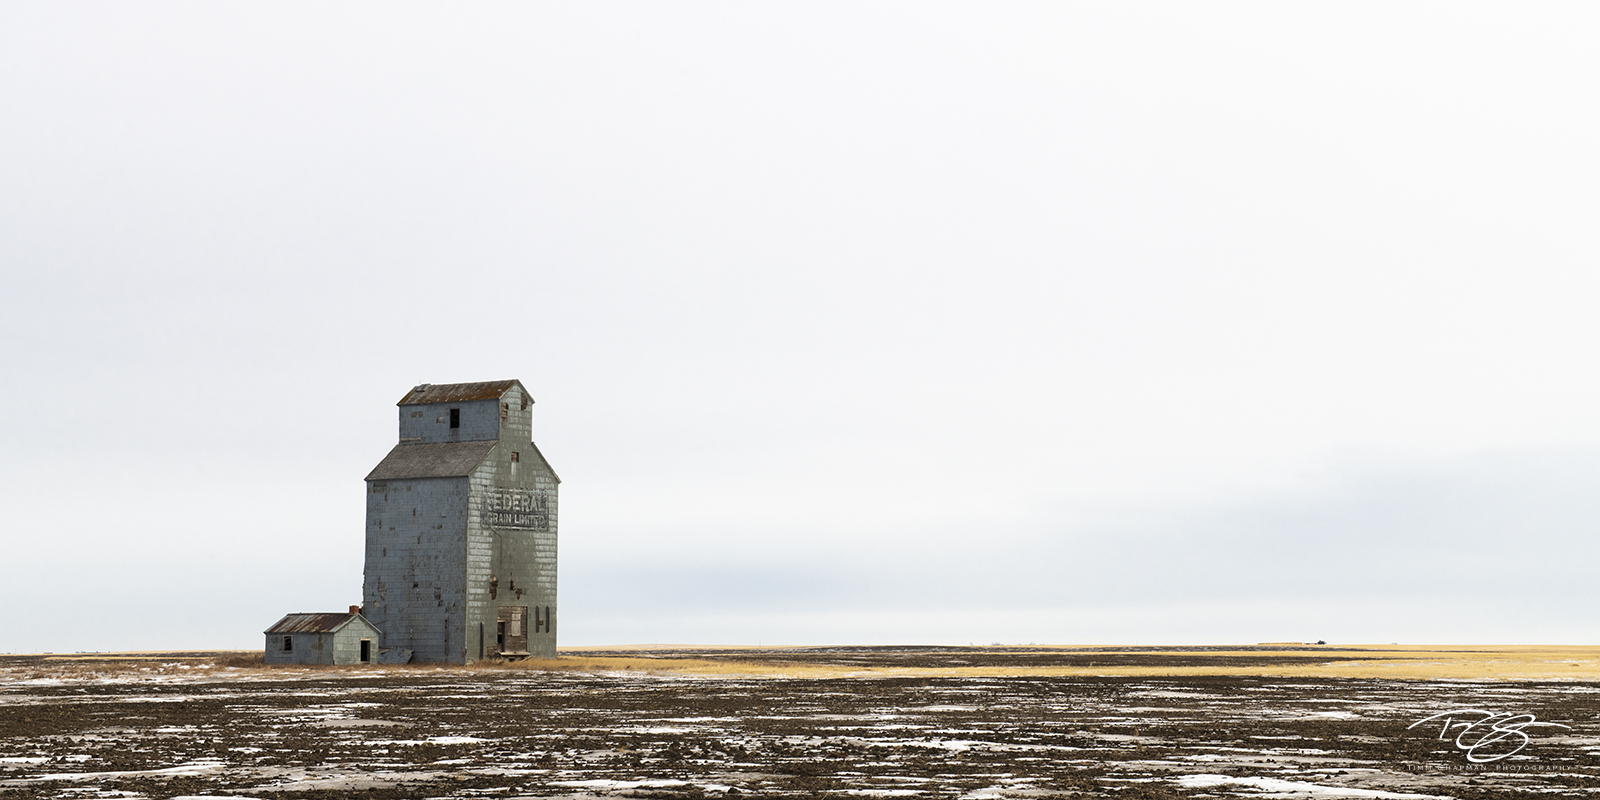 This Federal Elevator, built during the 1916-1917 crop year, operated for just shy of 50 years before taking early retirement